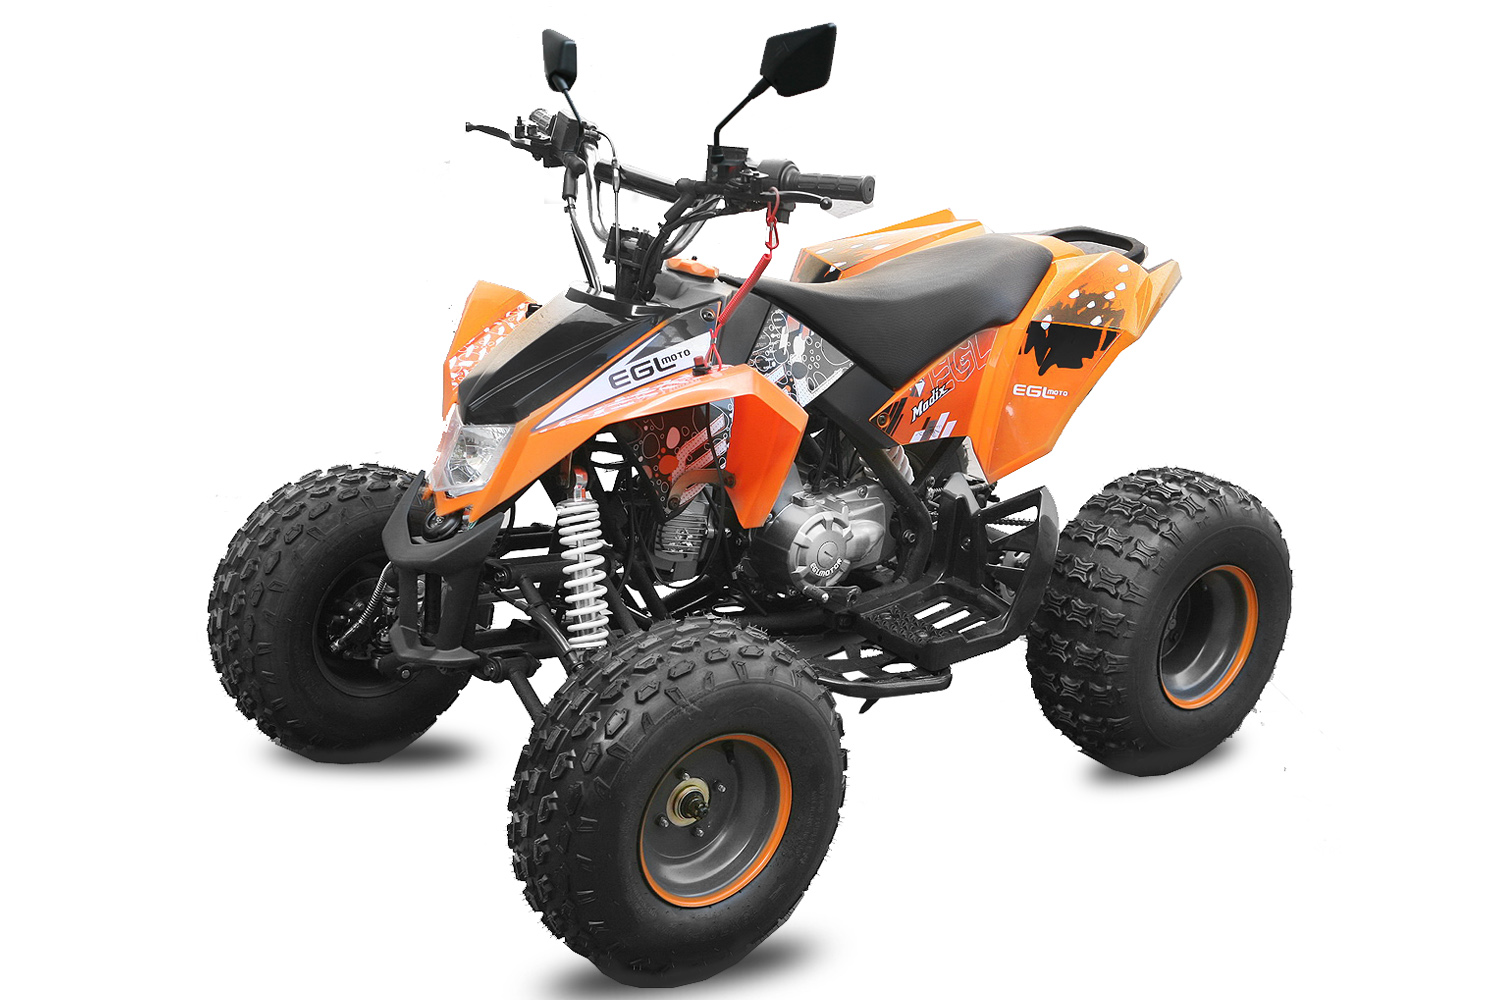 quad atv 50cc maddix 4 takter 45 km h mit stra enzulassung ab 16 jahren. Black Bedroom Furniture Sets. Home Design Ideas